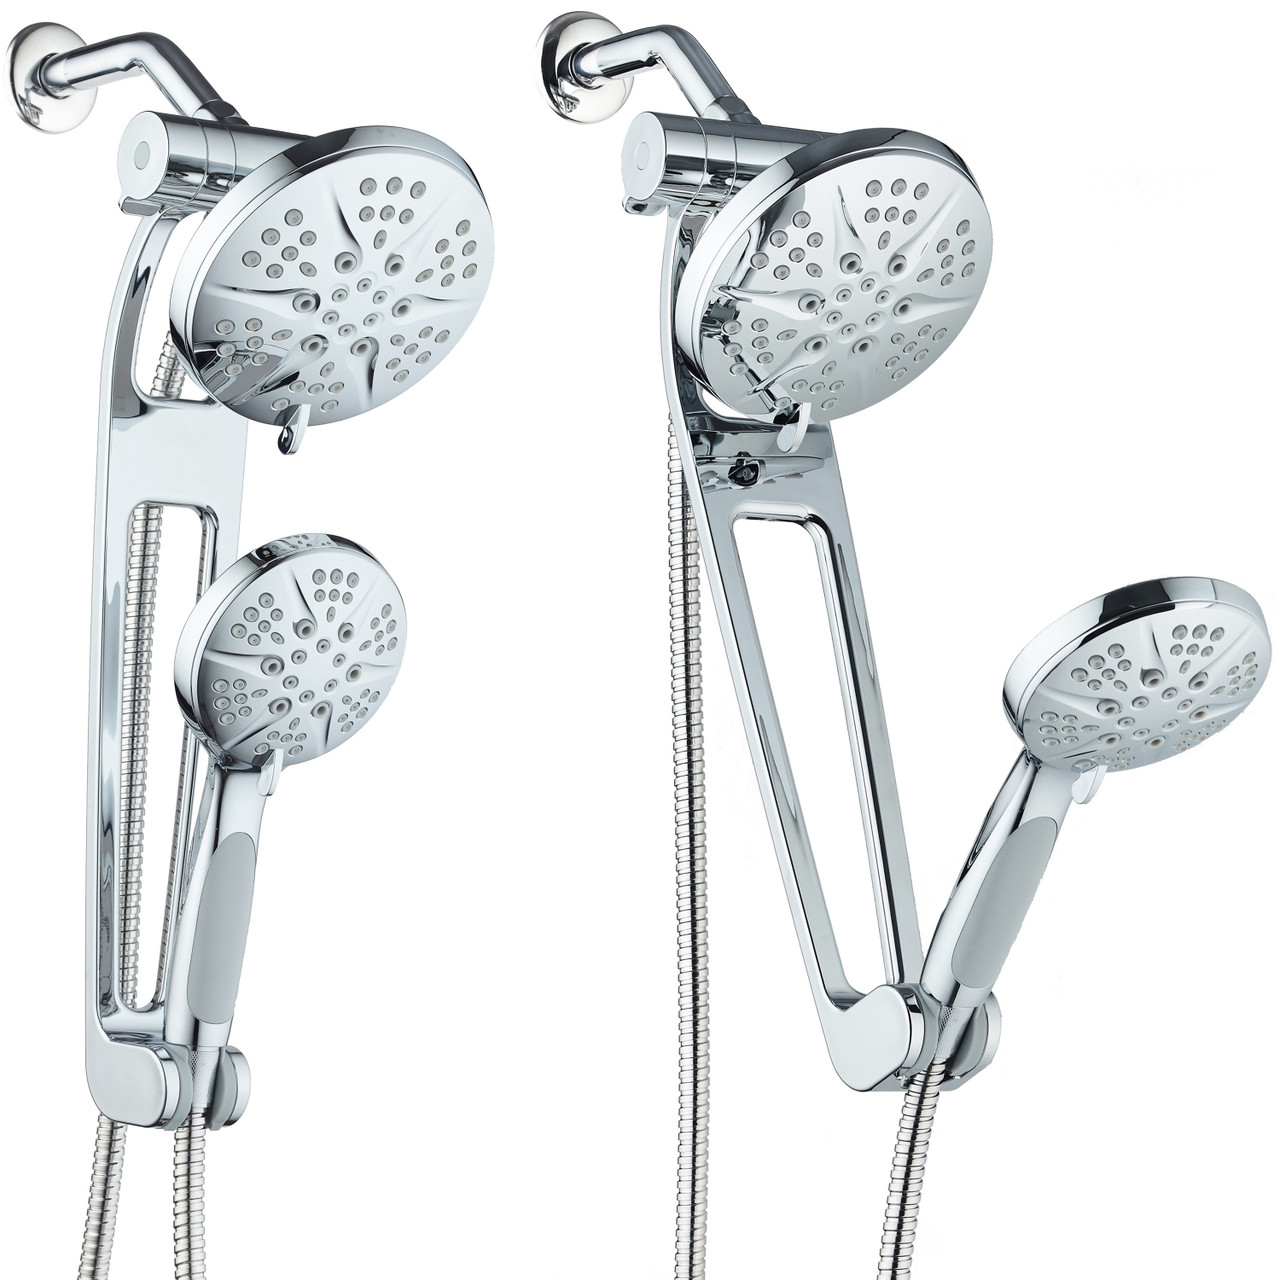 Aquabar Tm High Pressure 48 Mode 3 Way Shower Spa Combo With Adjustable Extension Arm For Total Convenience Enjoy Luxury 6 Rainfall Handheld Shower Head Separately Or Together All Chrome Finish Ipshowers Com